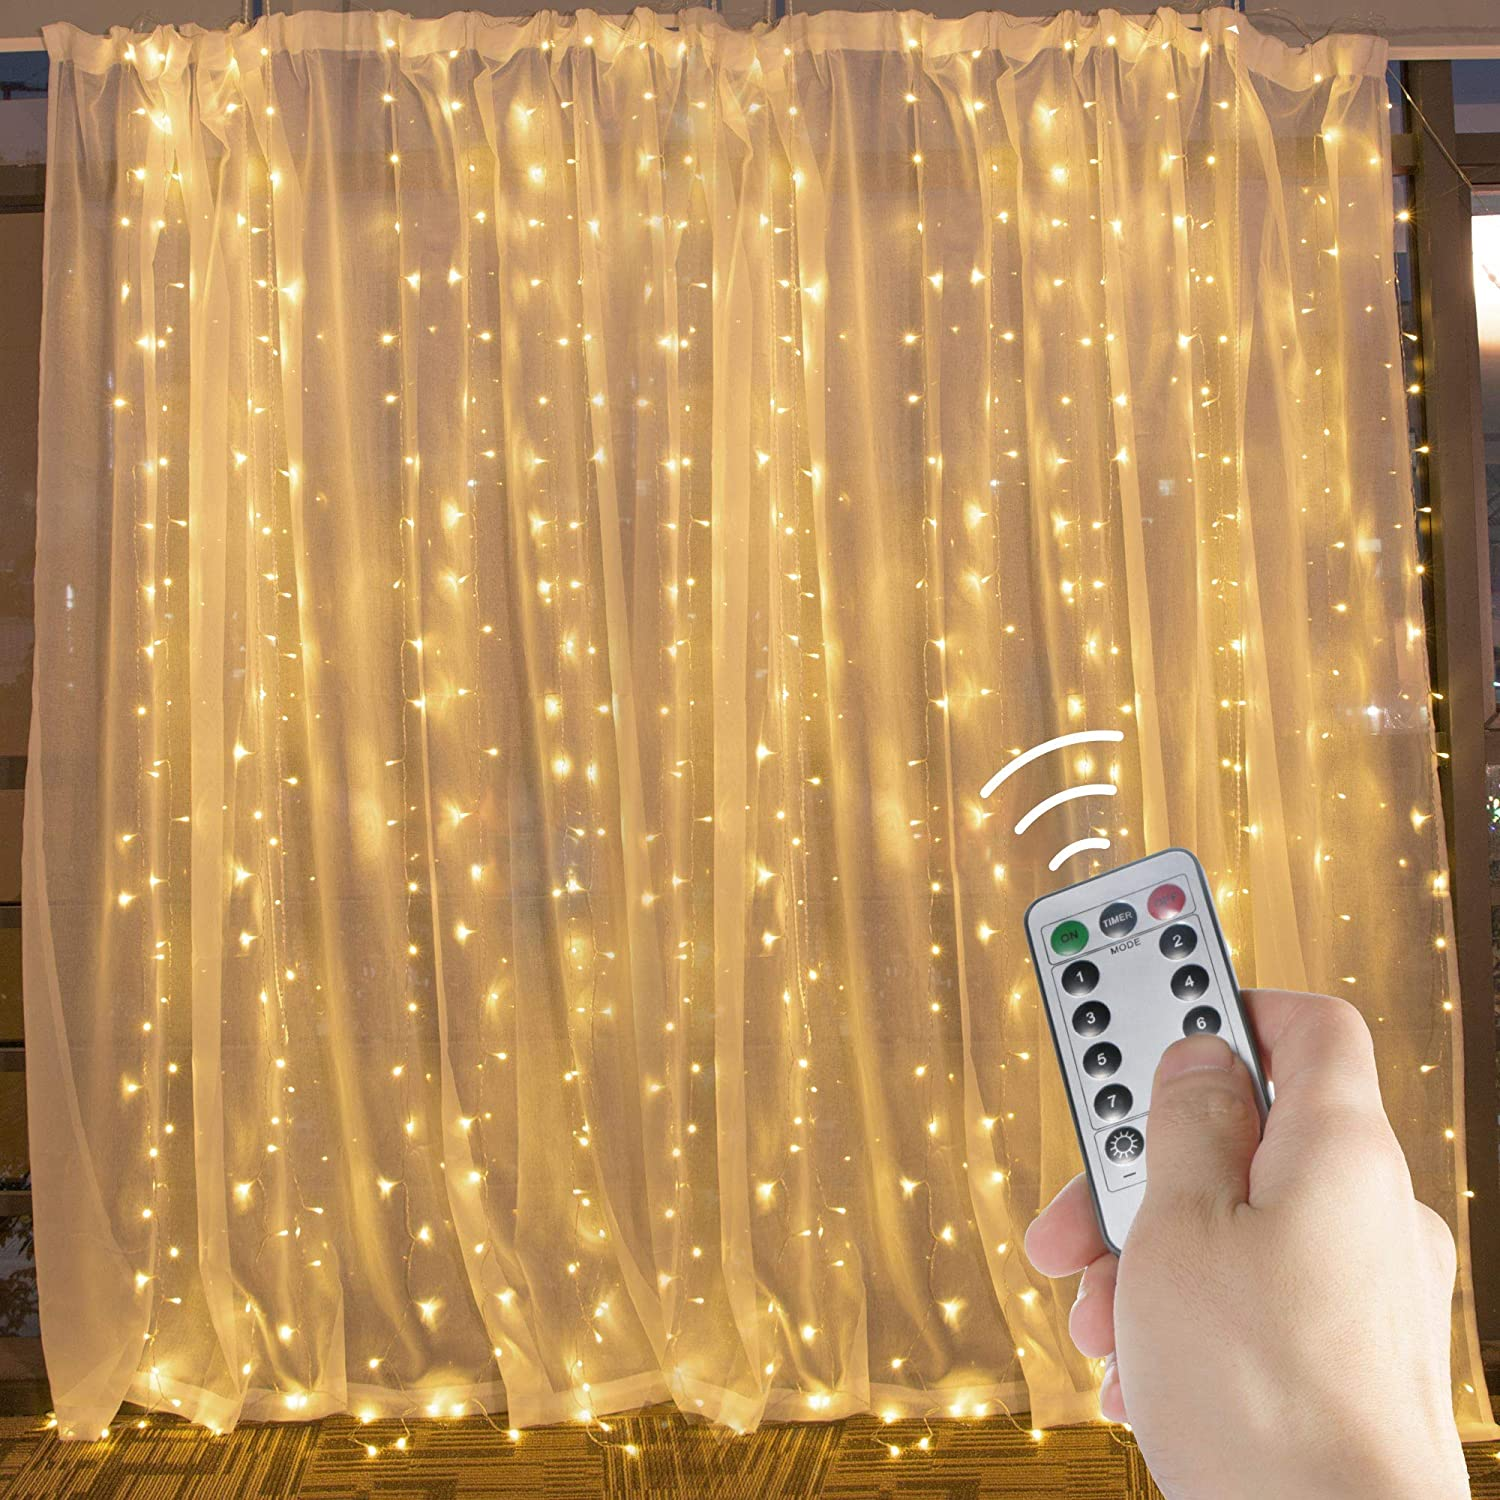 Window Curtain String Lights 20 Ft. 600 LED Fairy Twinkle Lights with Remote, Timer, 8 Modes for Room Wedding Party Backdrop Outdoor Indoor Decoration, Warm White, Unconnectable, Curtain Not Included